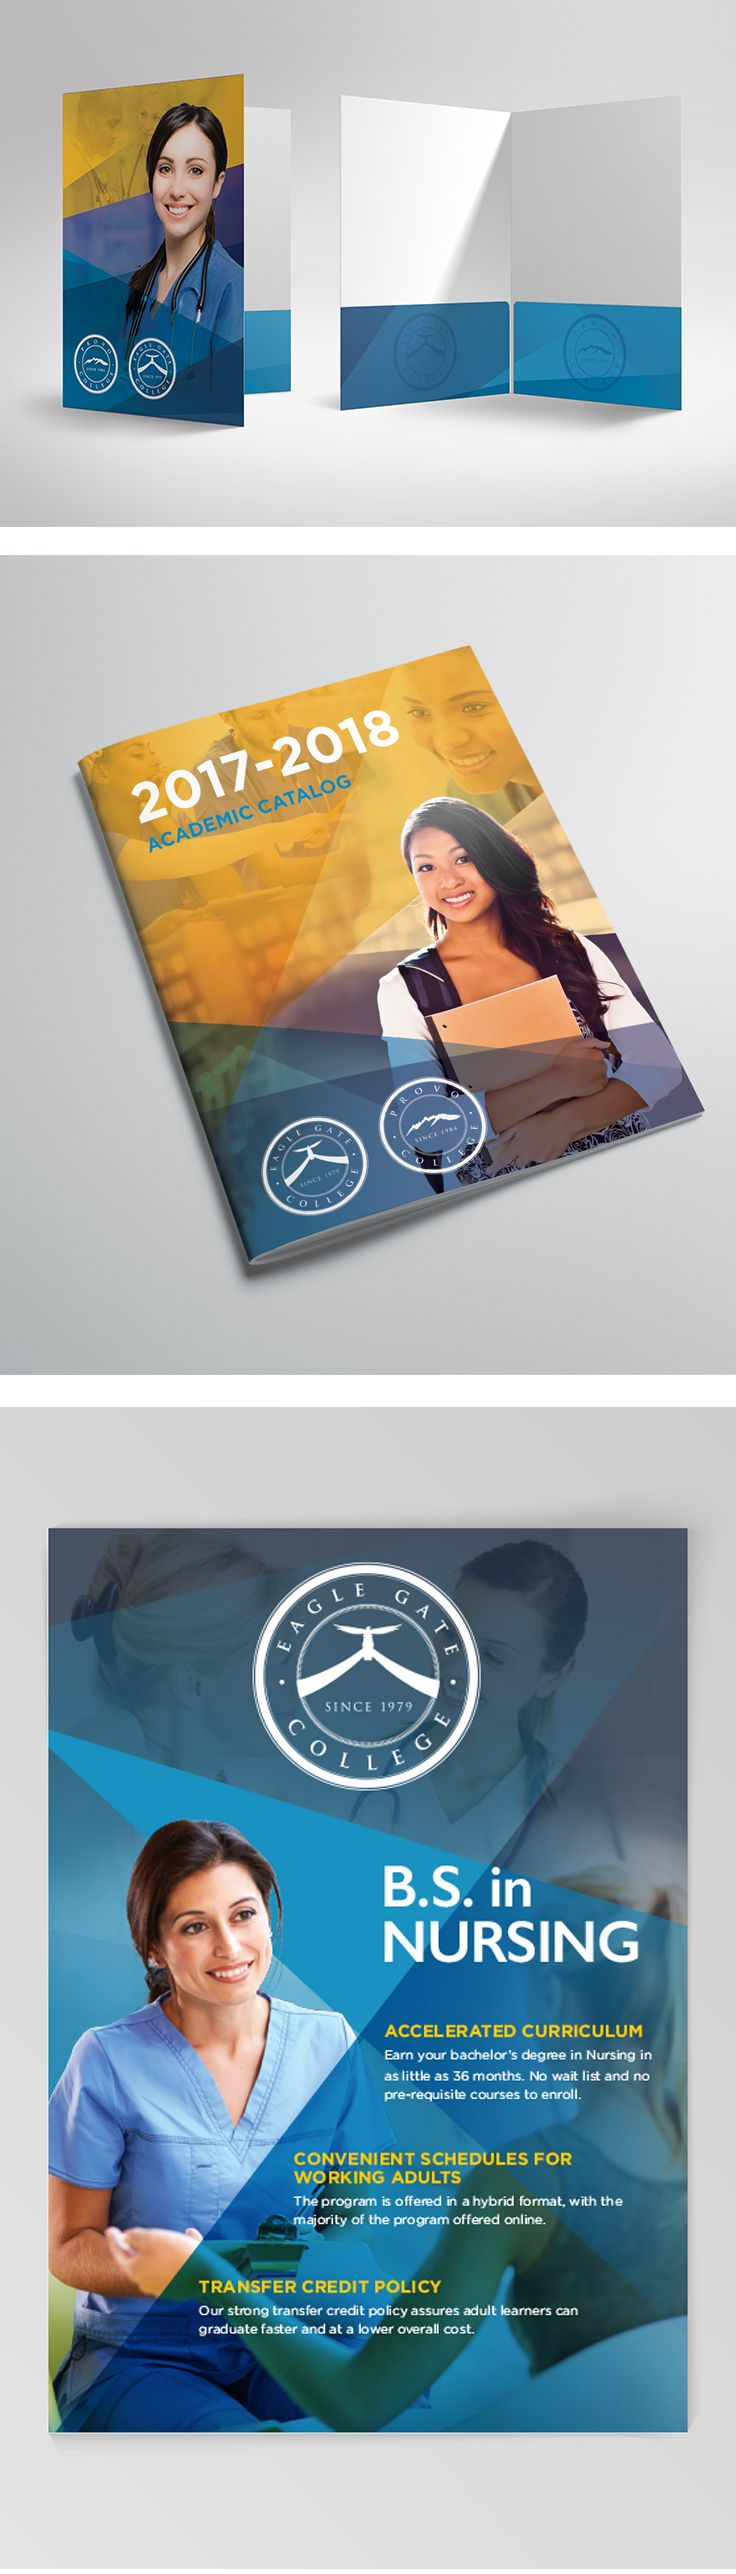 Kit cover, catalog cover, and poster for Eagle Gate College. #graphicdesign #print #kitcover #college #branding